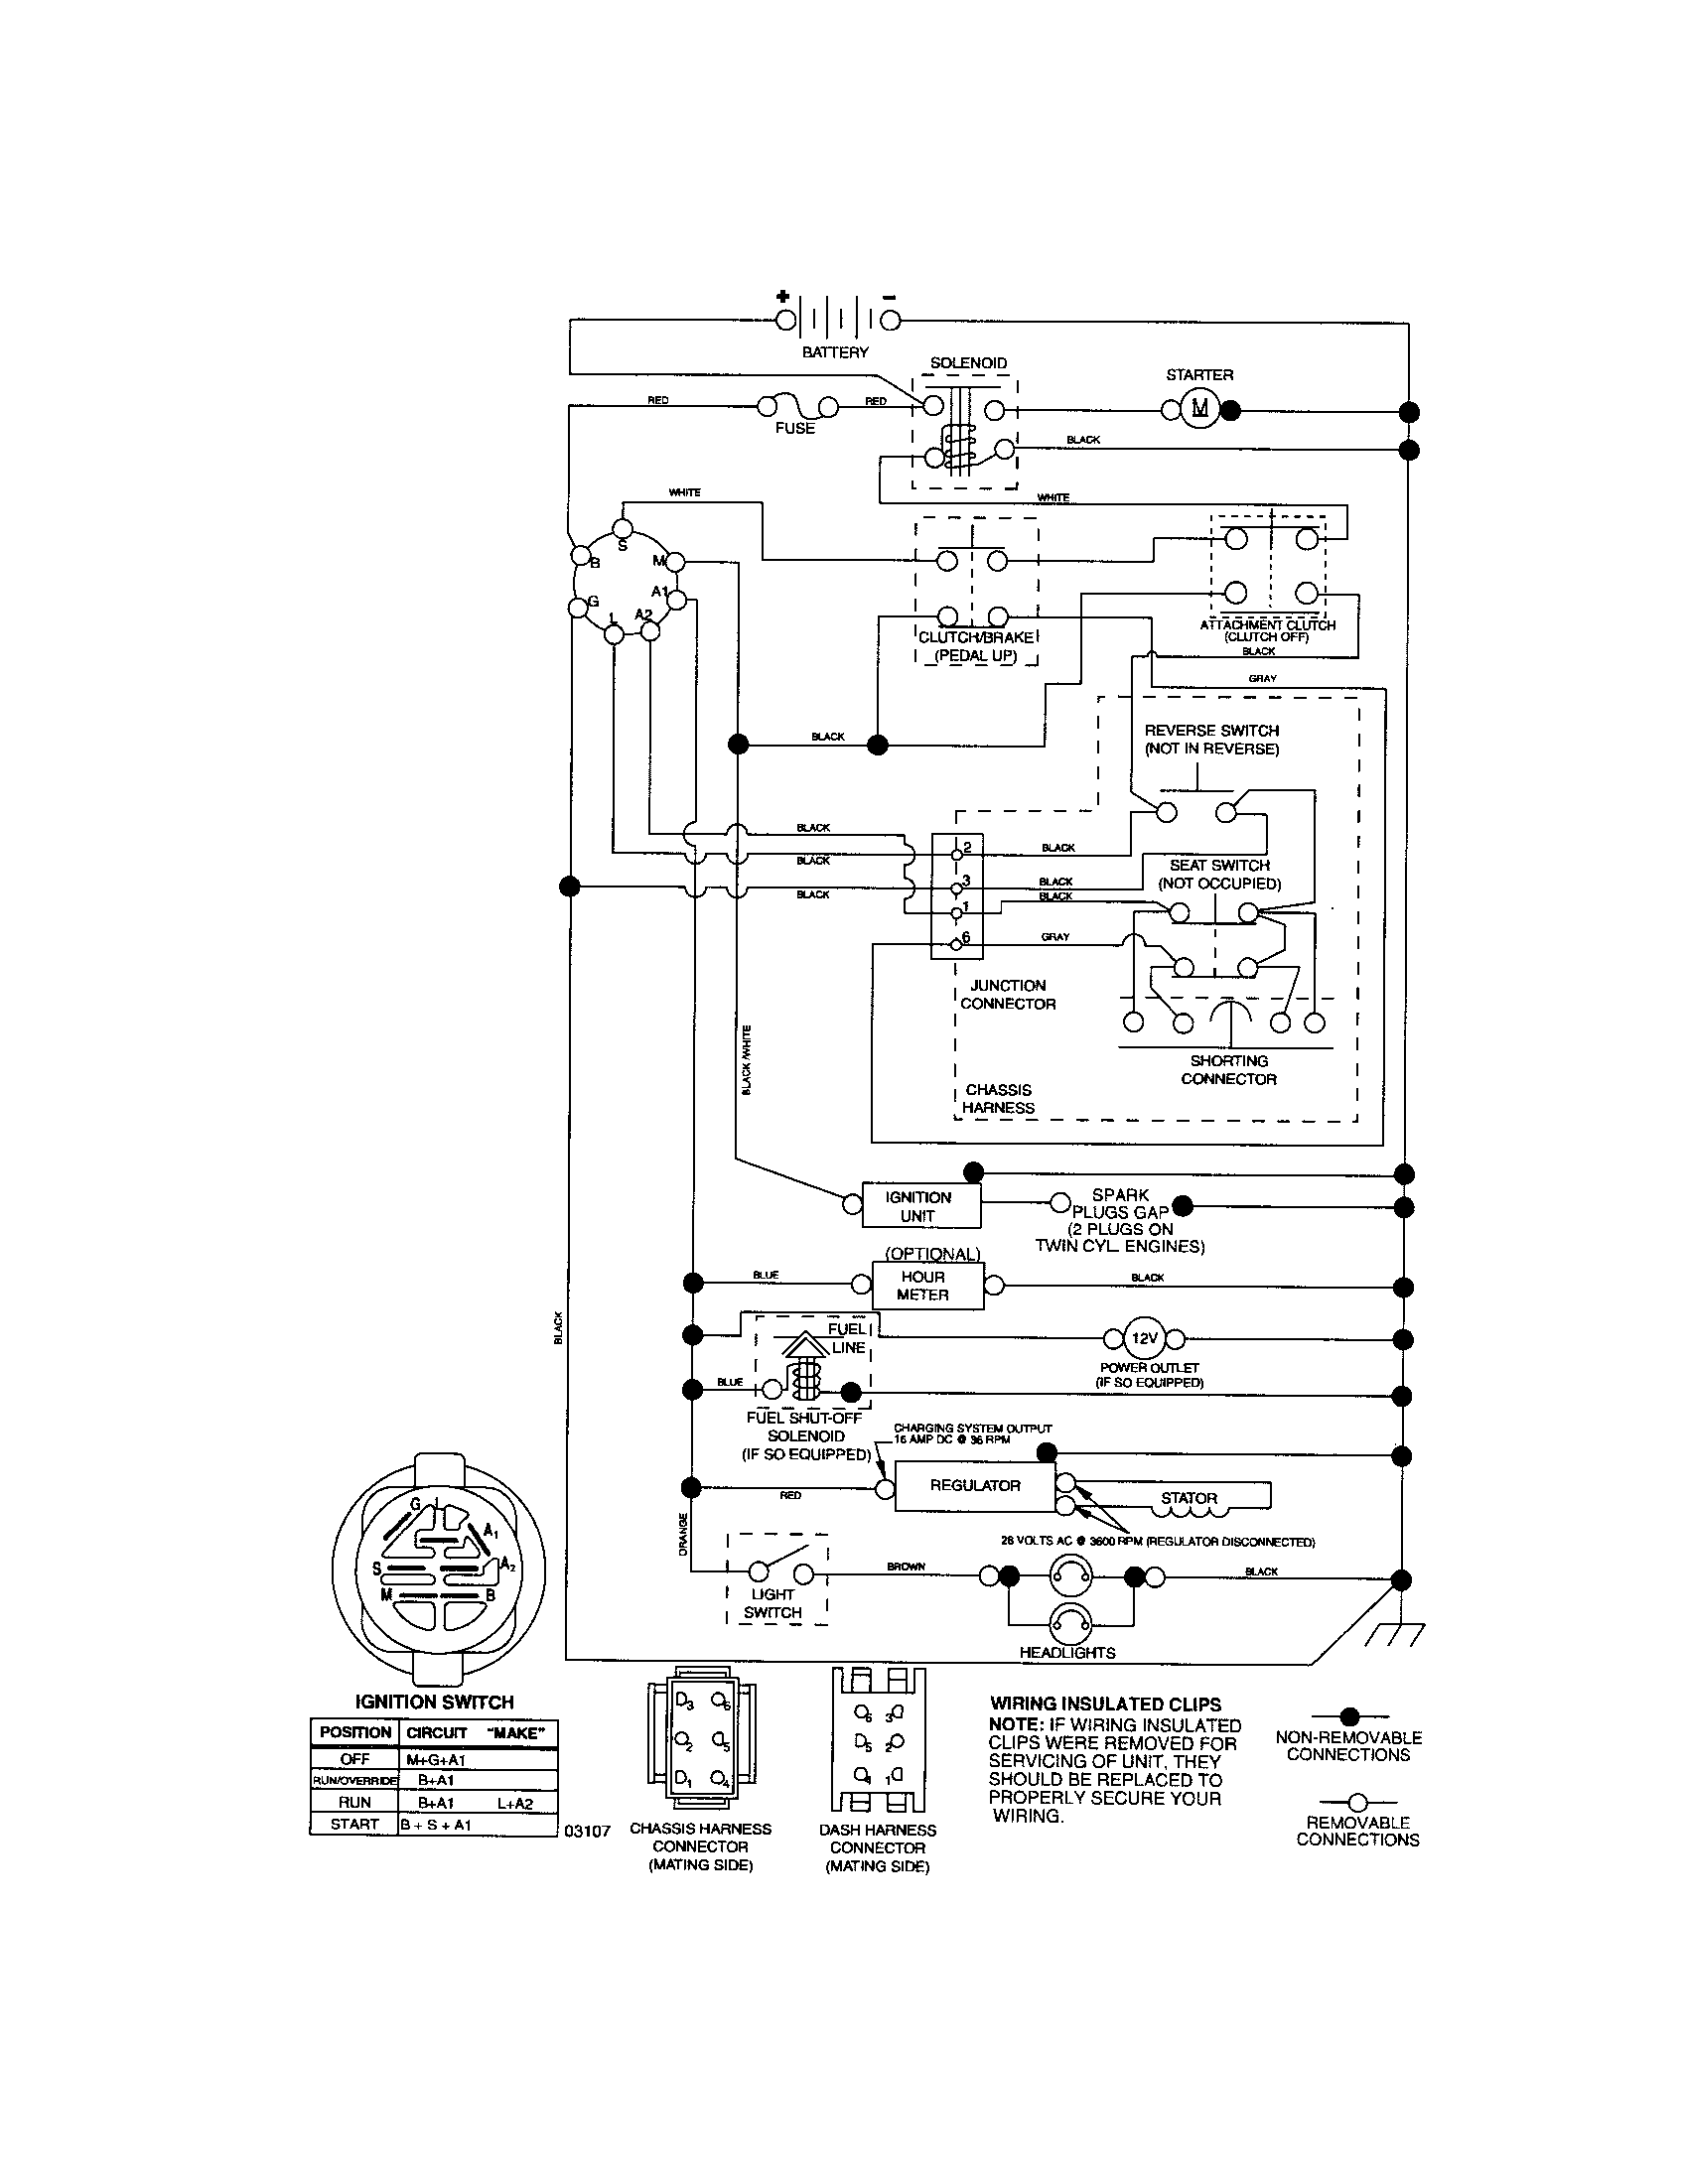 1954 chrysler new yorker wiring diagram [ 1696 x 2200 Pixel ]